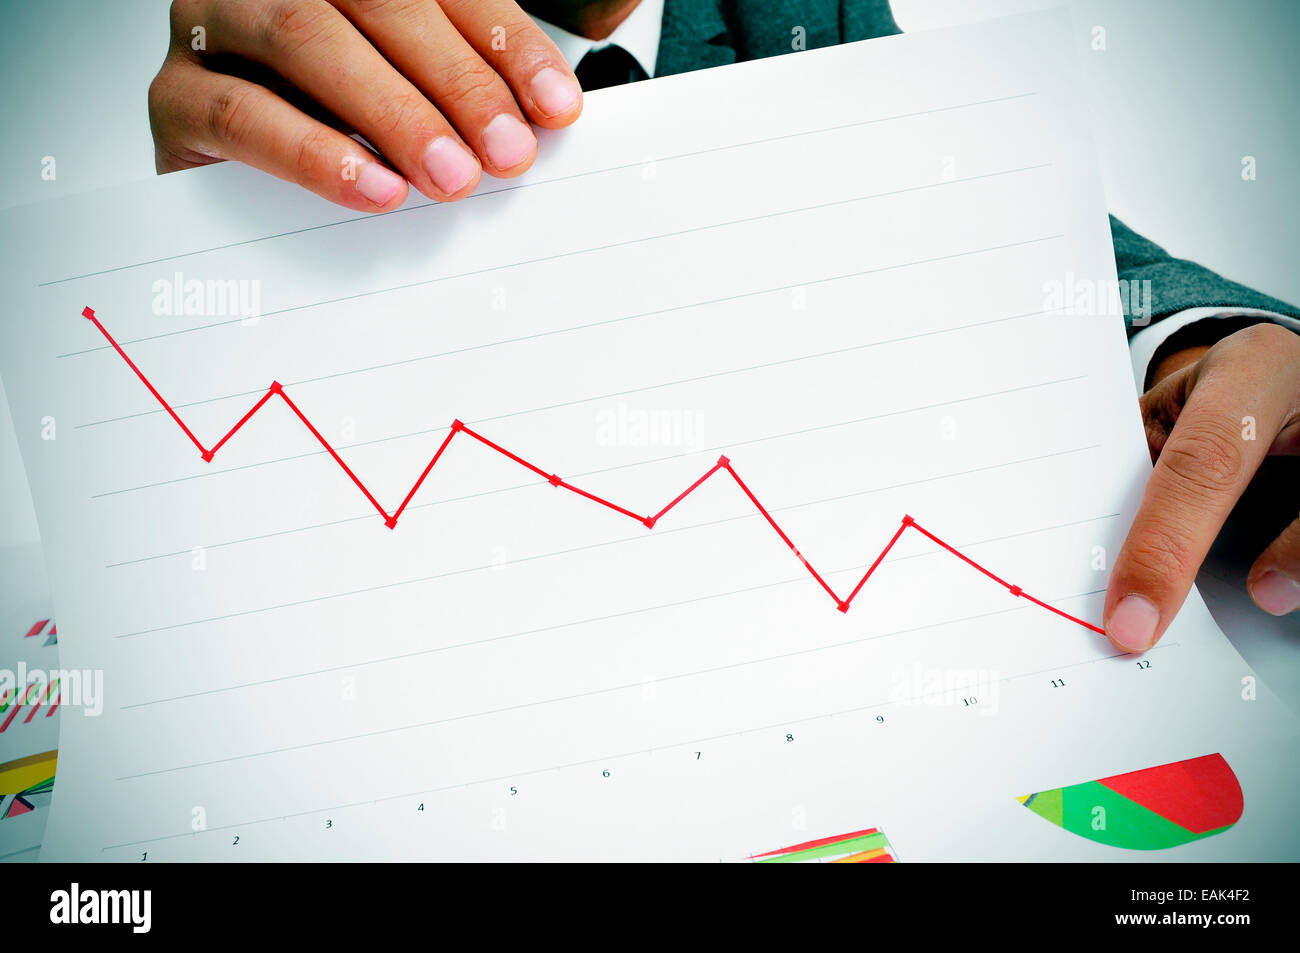 man wearing a suit sitting in a table showing a graph of economic losses Stock Photo